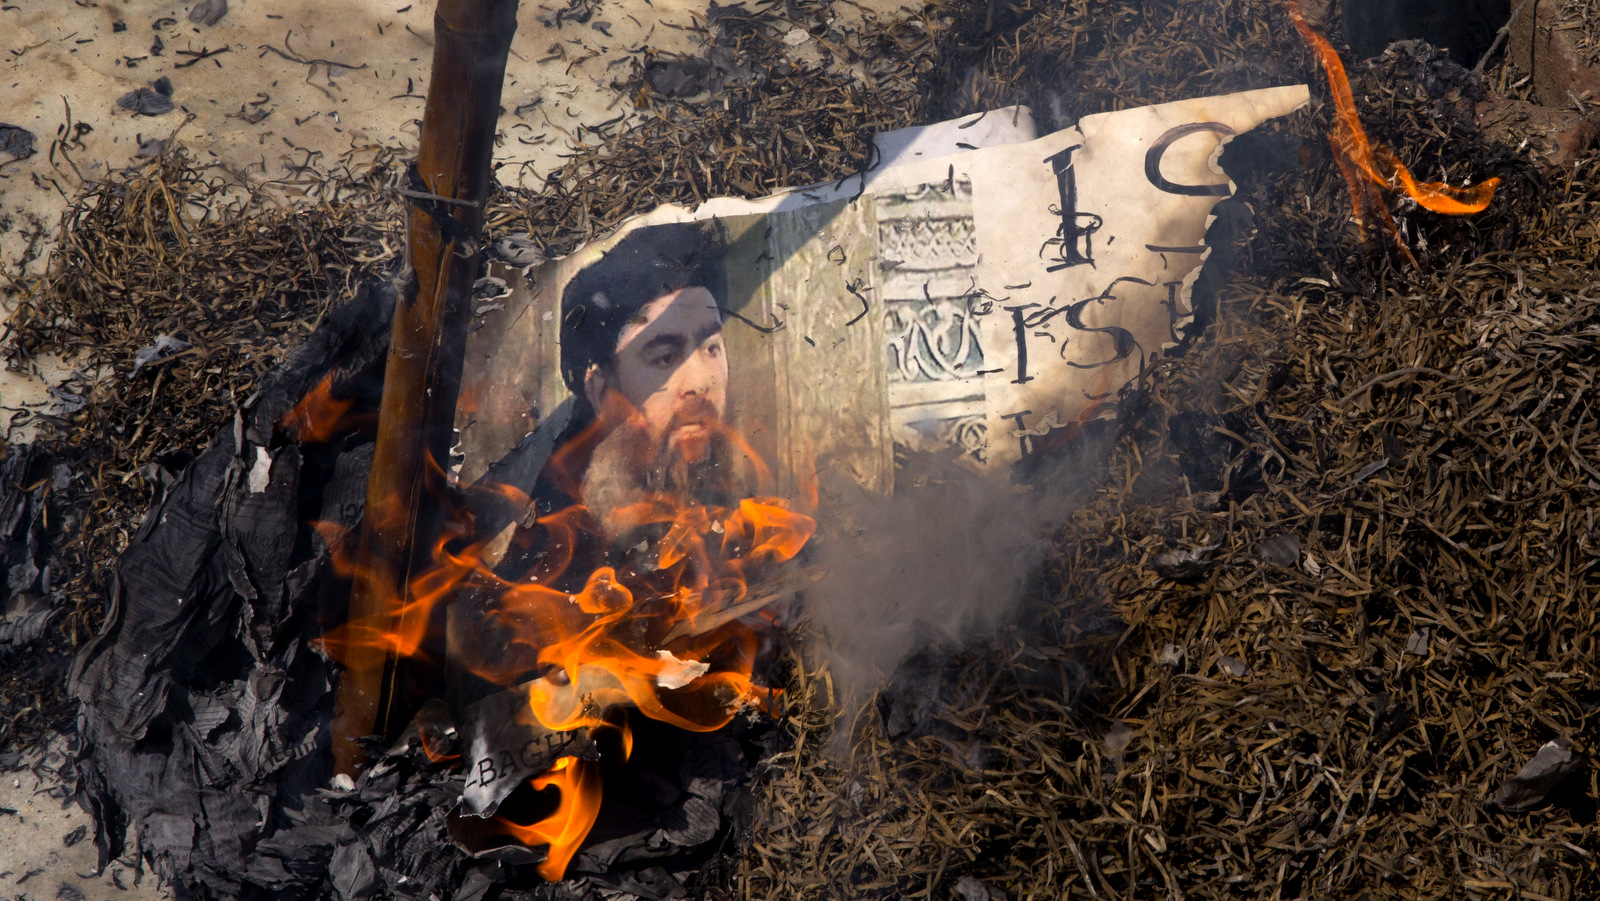 Shia Muslims burn an effigy of the leader of the ISIS, Abu Bakr al-Baghdadi during a protest in New Delhi, India, Friday, June 9, 2017. The protest was sparked by the Wednesday's attacks on Iran's parliament and the tomb of its revolutionary leader that killed over a dozen. The banner read: ISIS equals Satan. (AP/Manish Swarup)